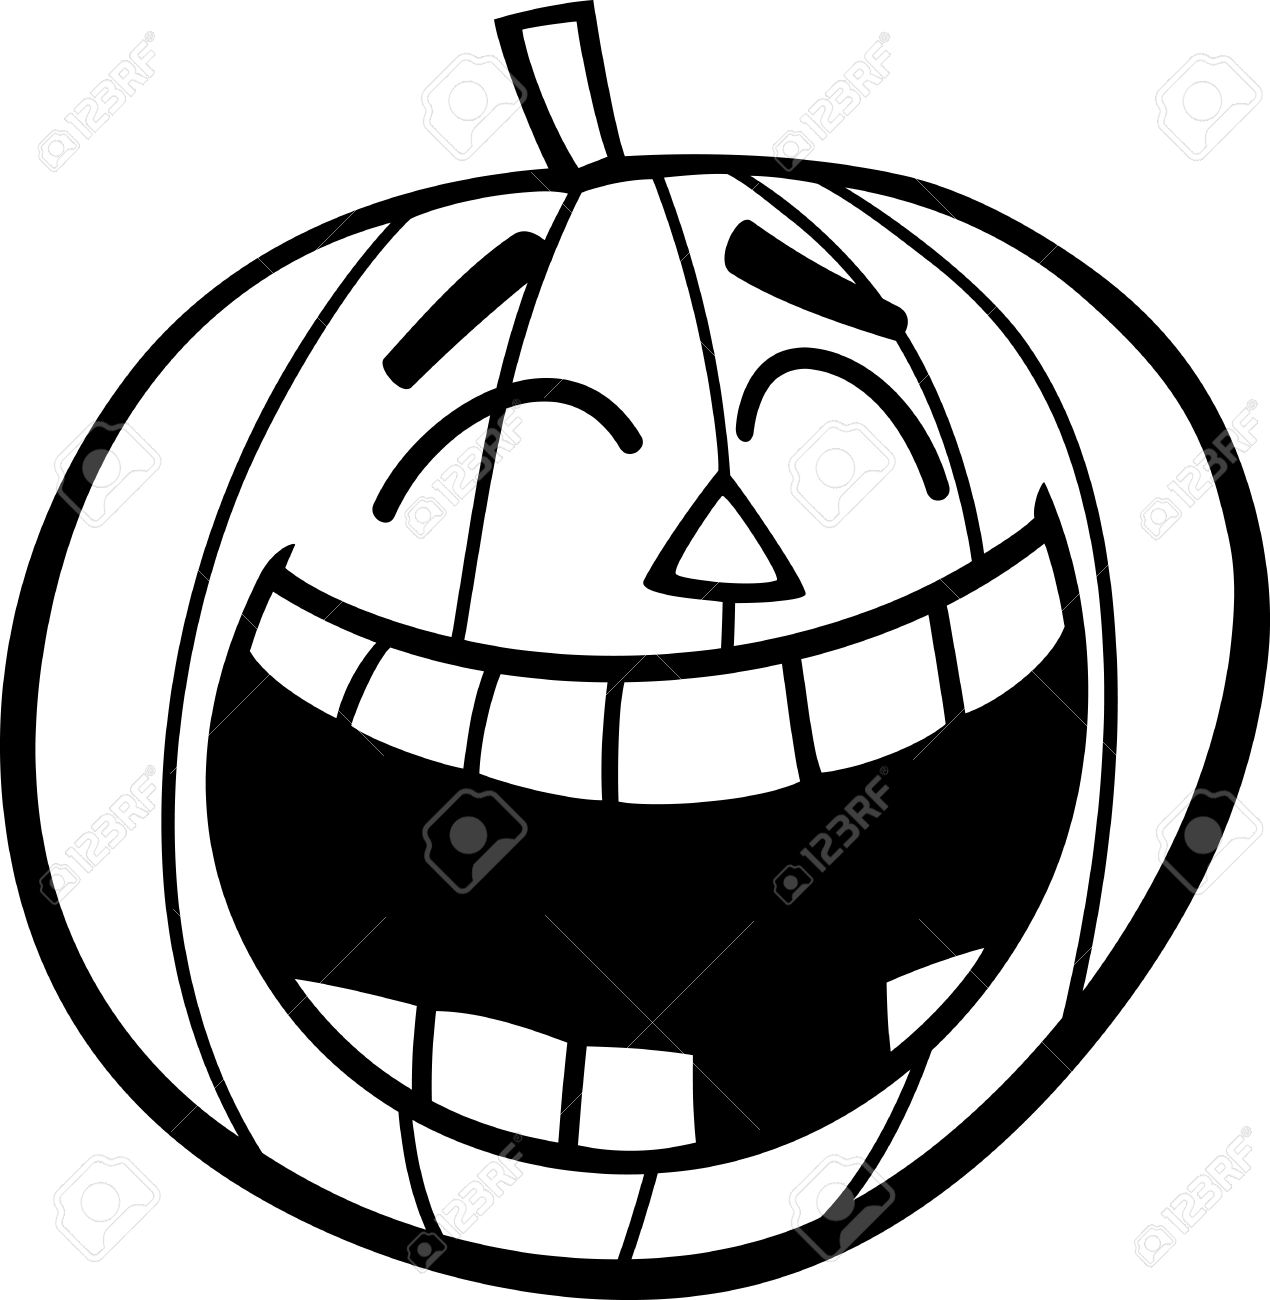 black and white cartoon illustration of laughing halloween pumpkin rh 123rf com pumpkin clipart black and white png pumpkin outline clipart black and white